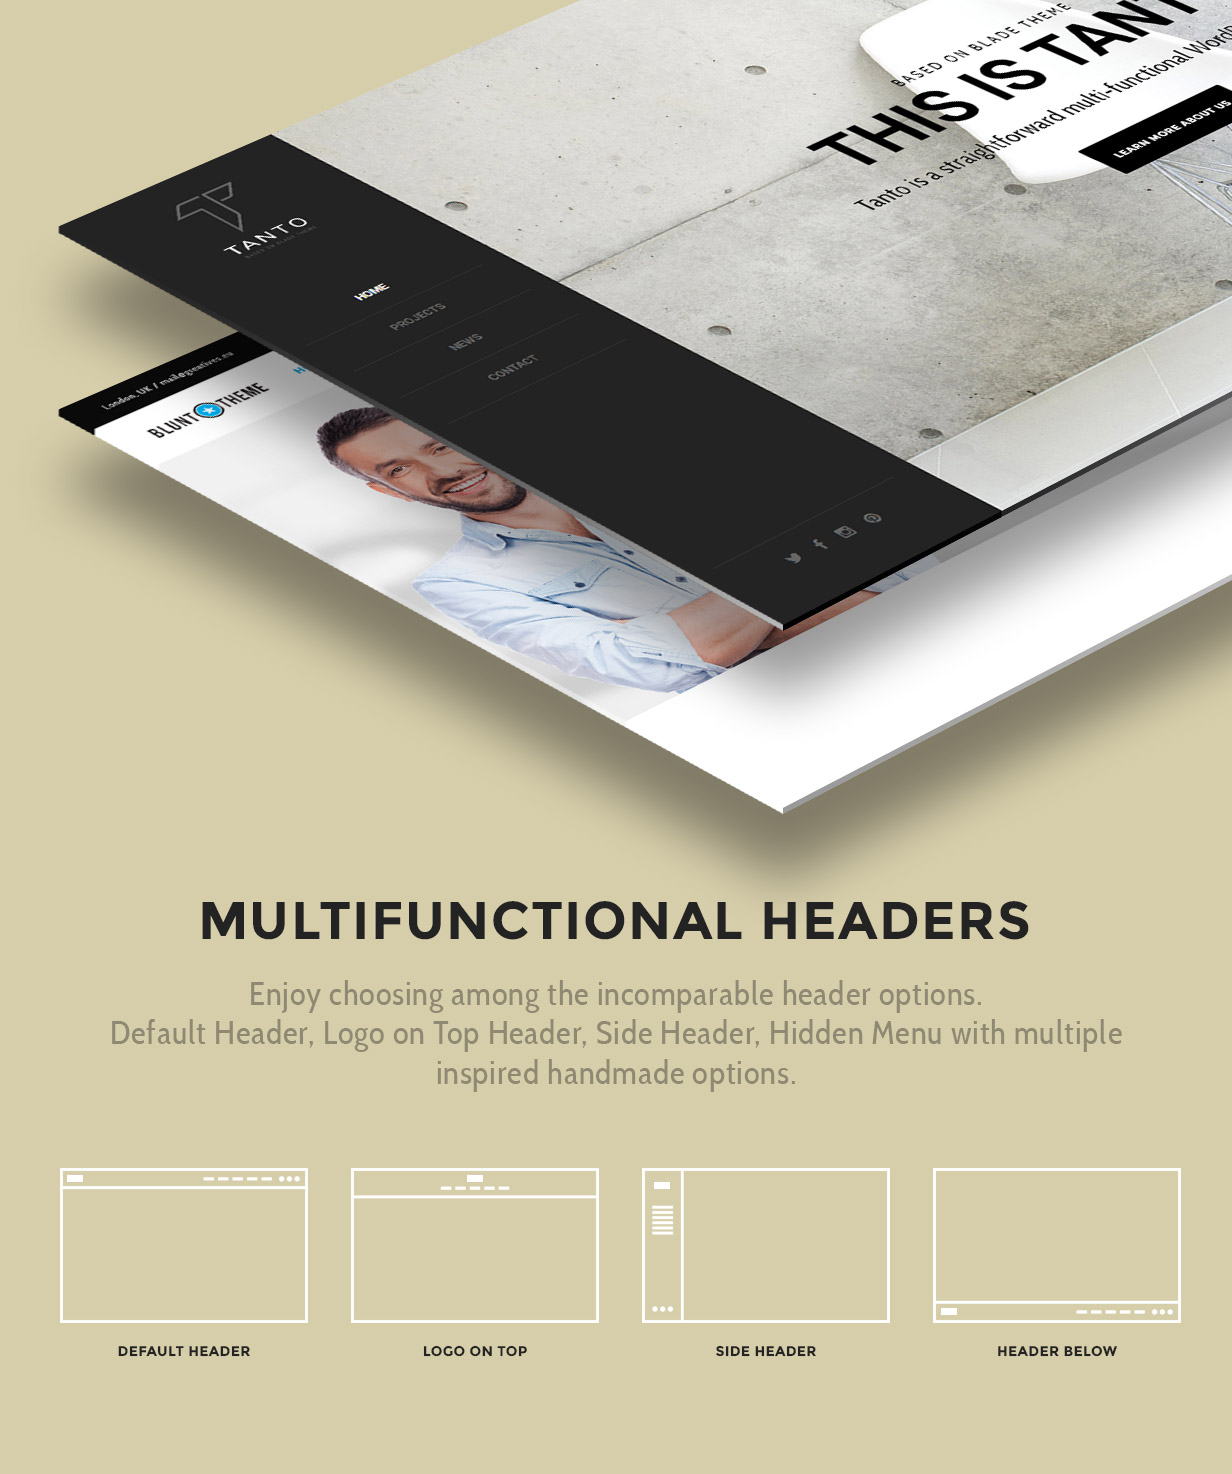 Multifunctional Headers